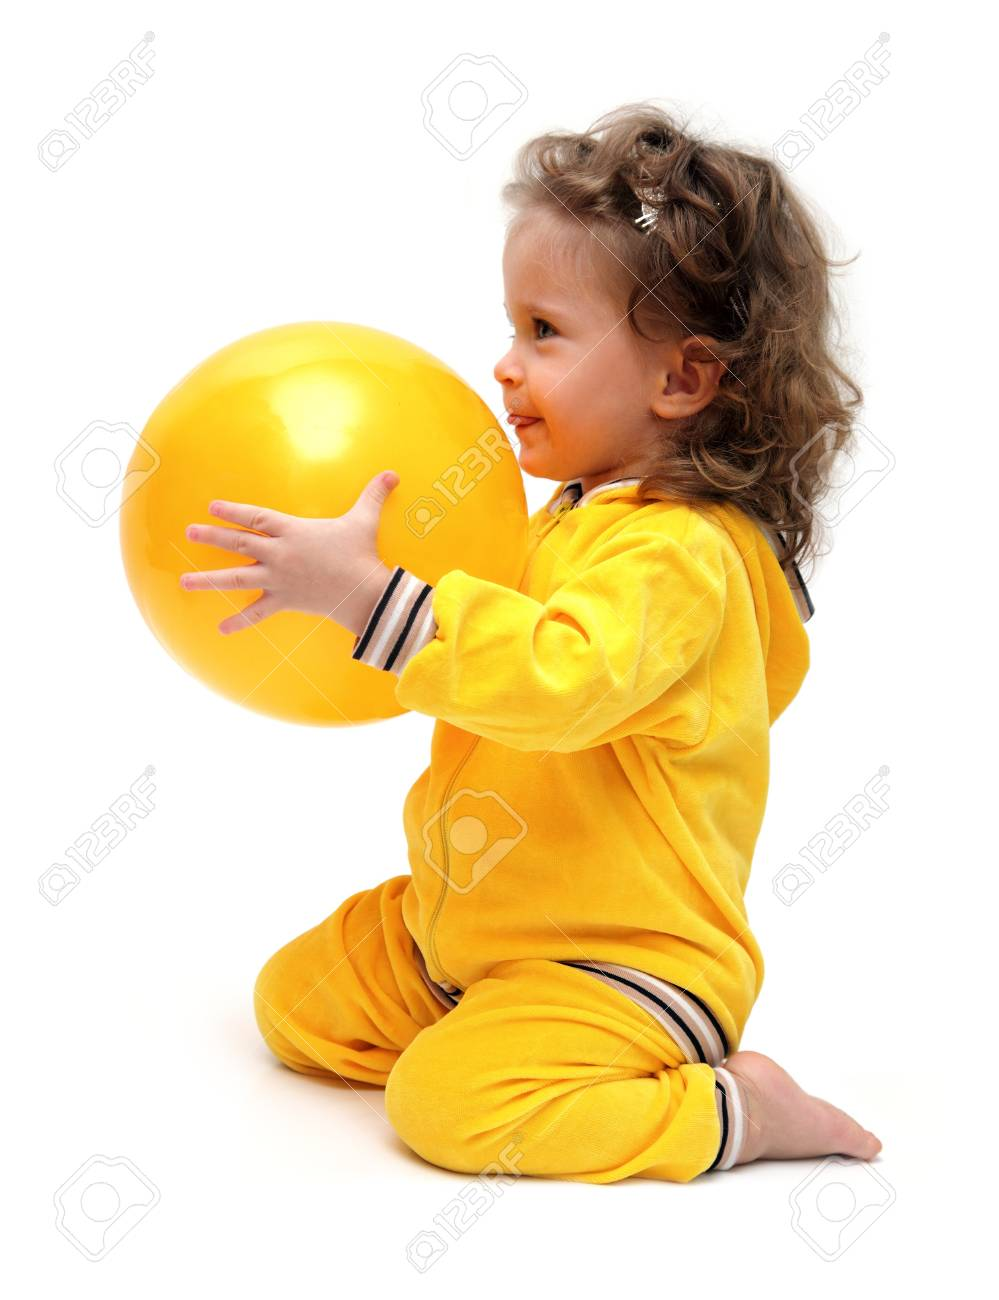 cute little girl in yellow playing with ball - 9095966